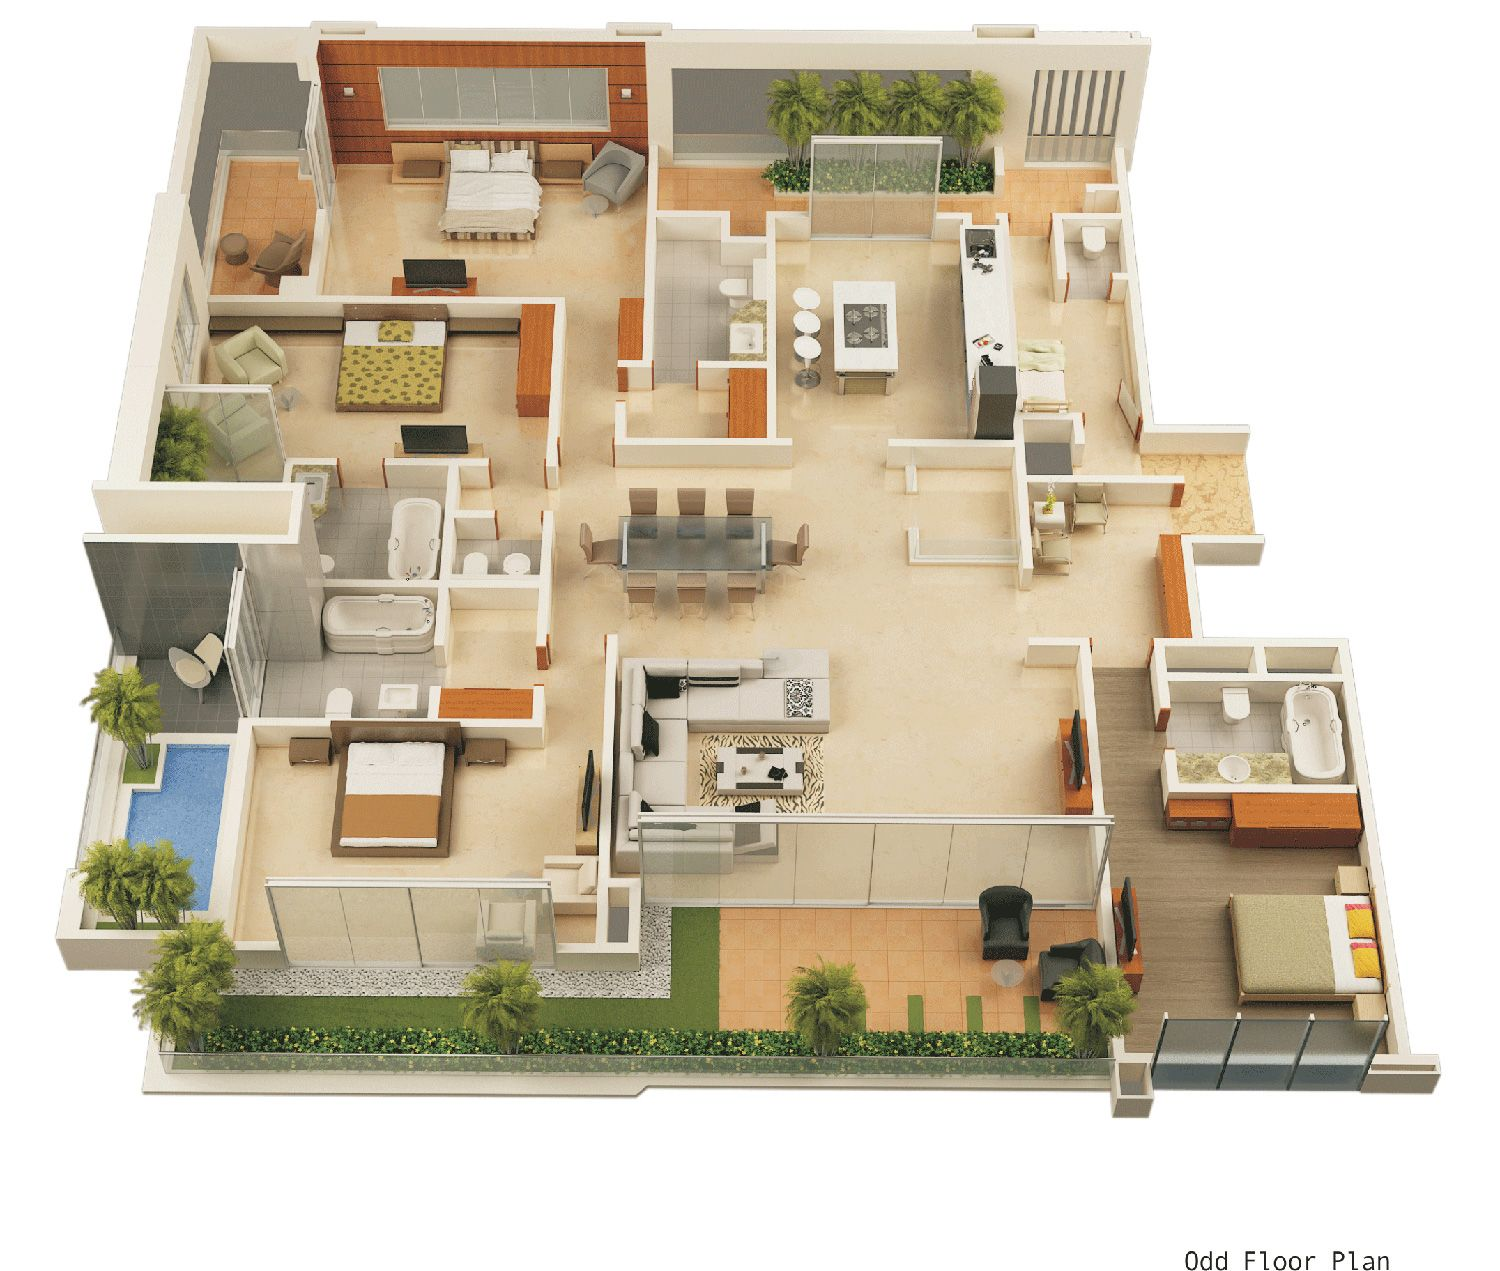 3d Floor Plan Design House Floor Plan Design Building 3d Floor 3d House Plans House Blueprints 4 Bedroom House Plans